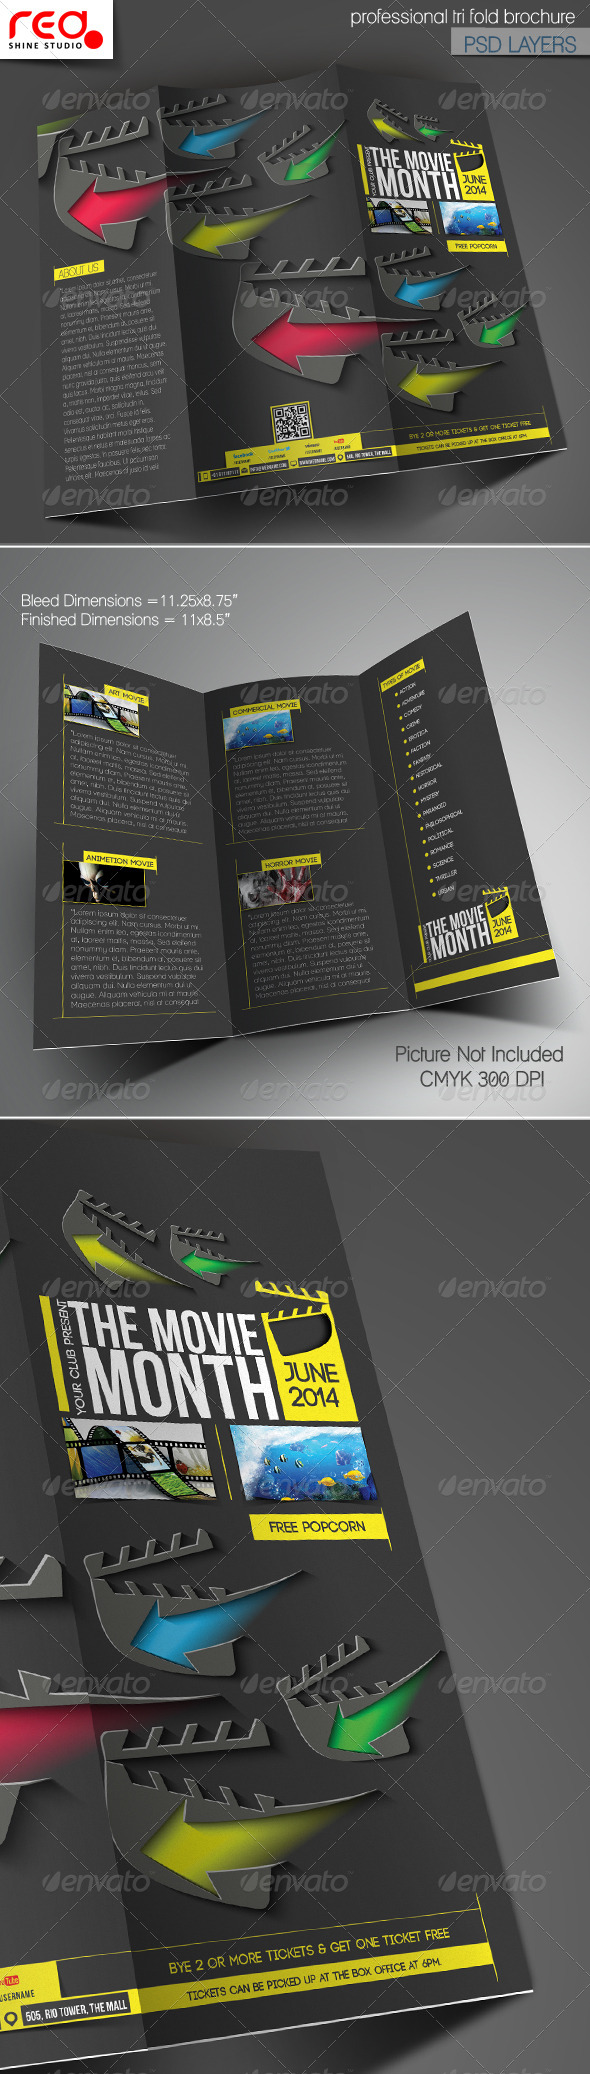 GraphicRiver The Movie Month Trifold Brochure Template 7111575